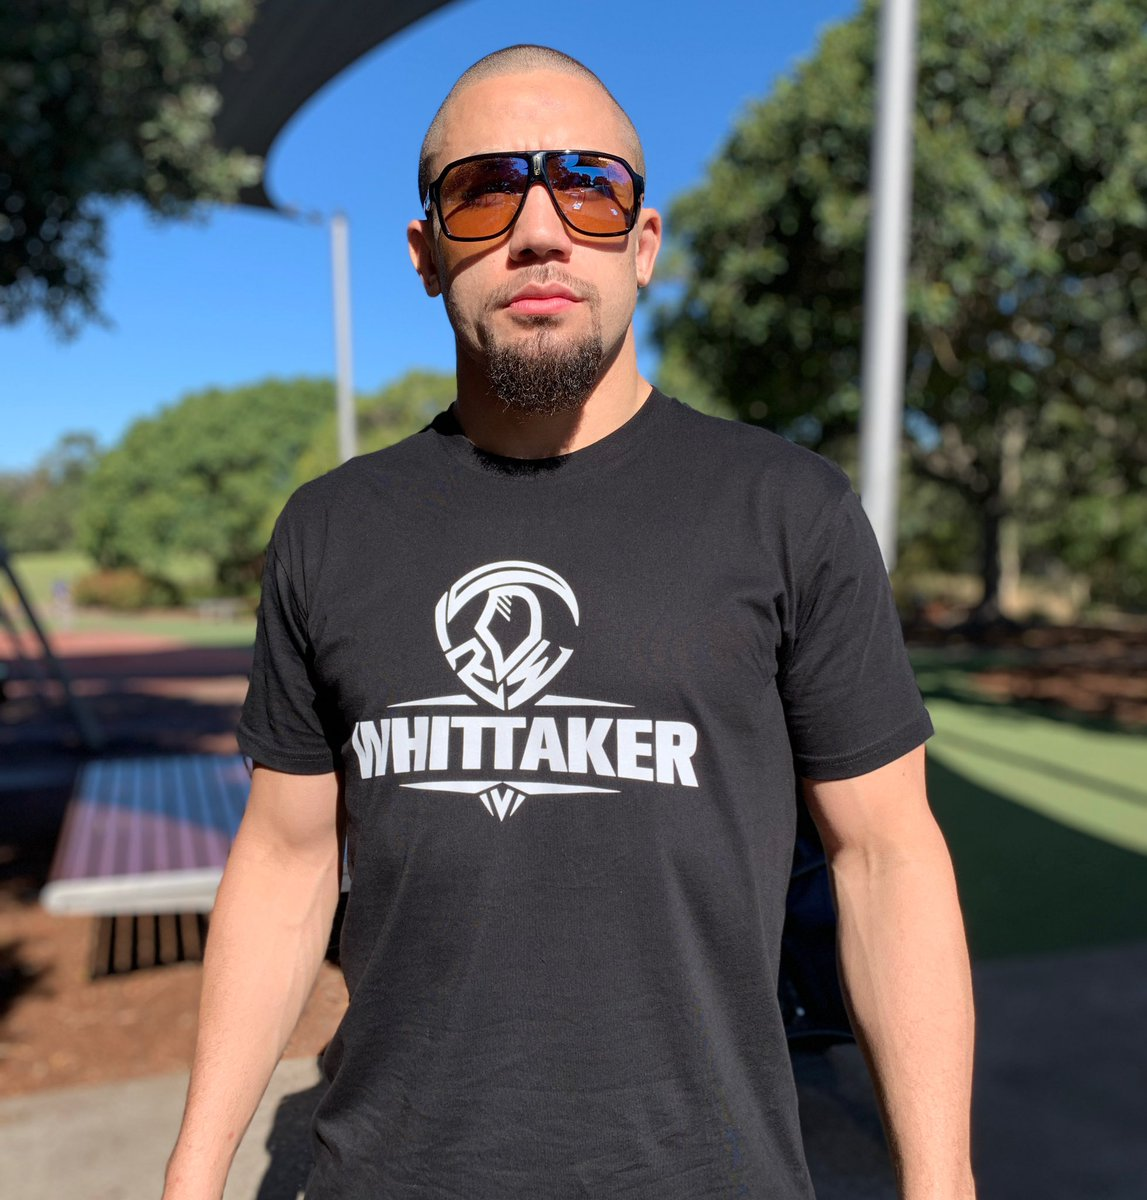 Reaper mode about to hit...one week out 🏆 #ufc254  #calmbeforethestorm @robwhittakermma  . . Wearing the NEW 'Whittaker Classic' T-shirt 🔥 see website link in bio  https://t.co/Rgpcw7KTkX   #reapernation #reapergear https://t.co/cK1wRHgJ0e